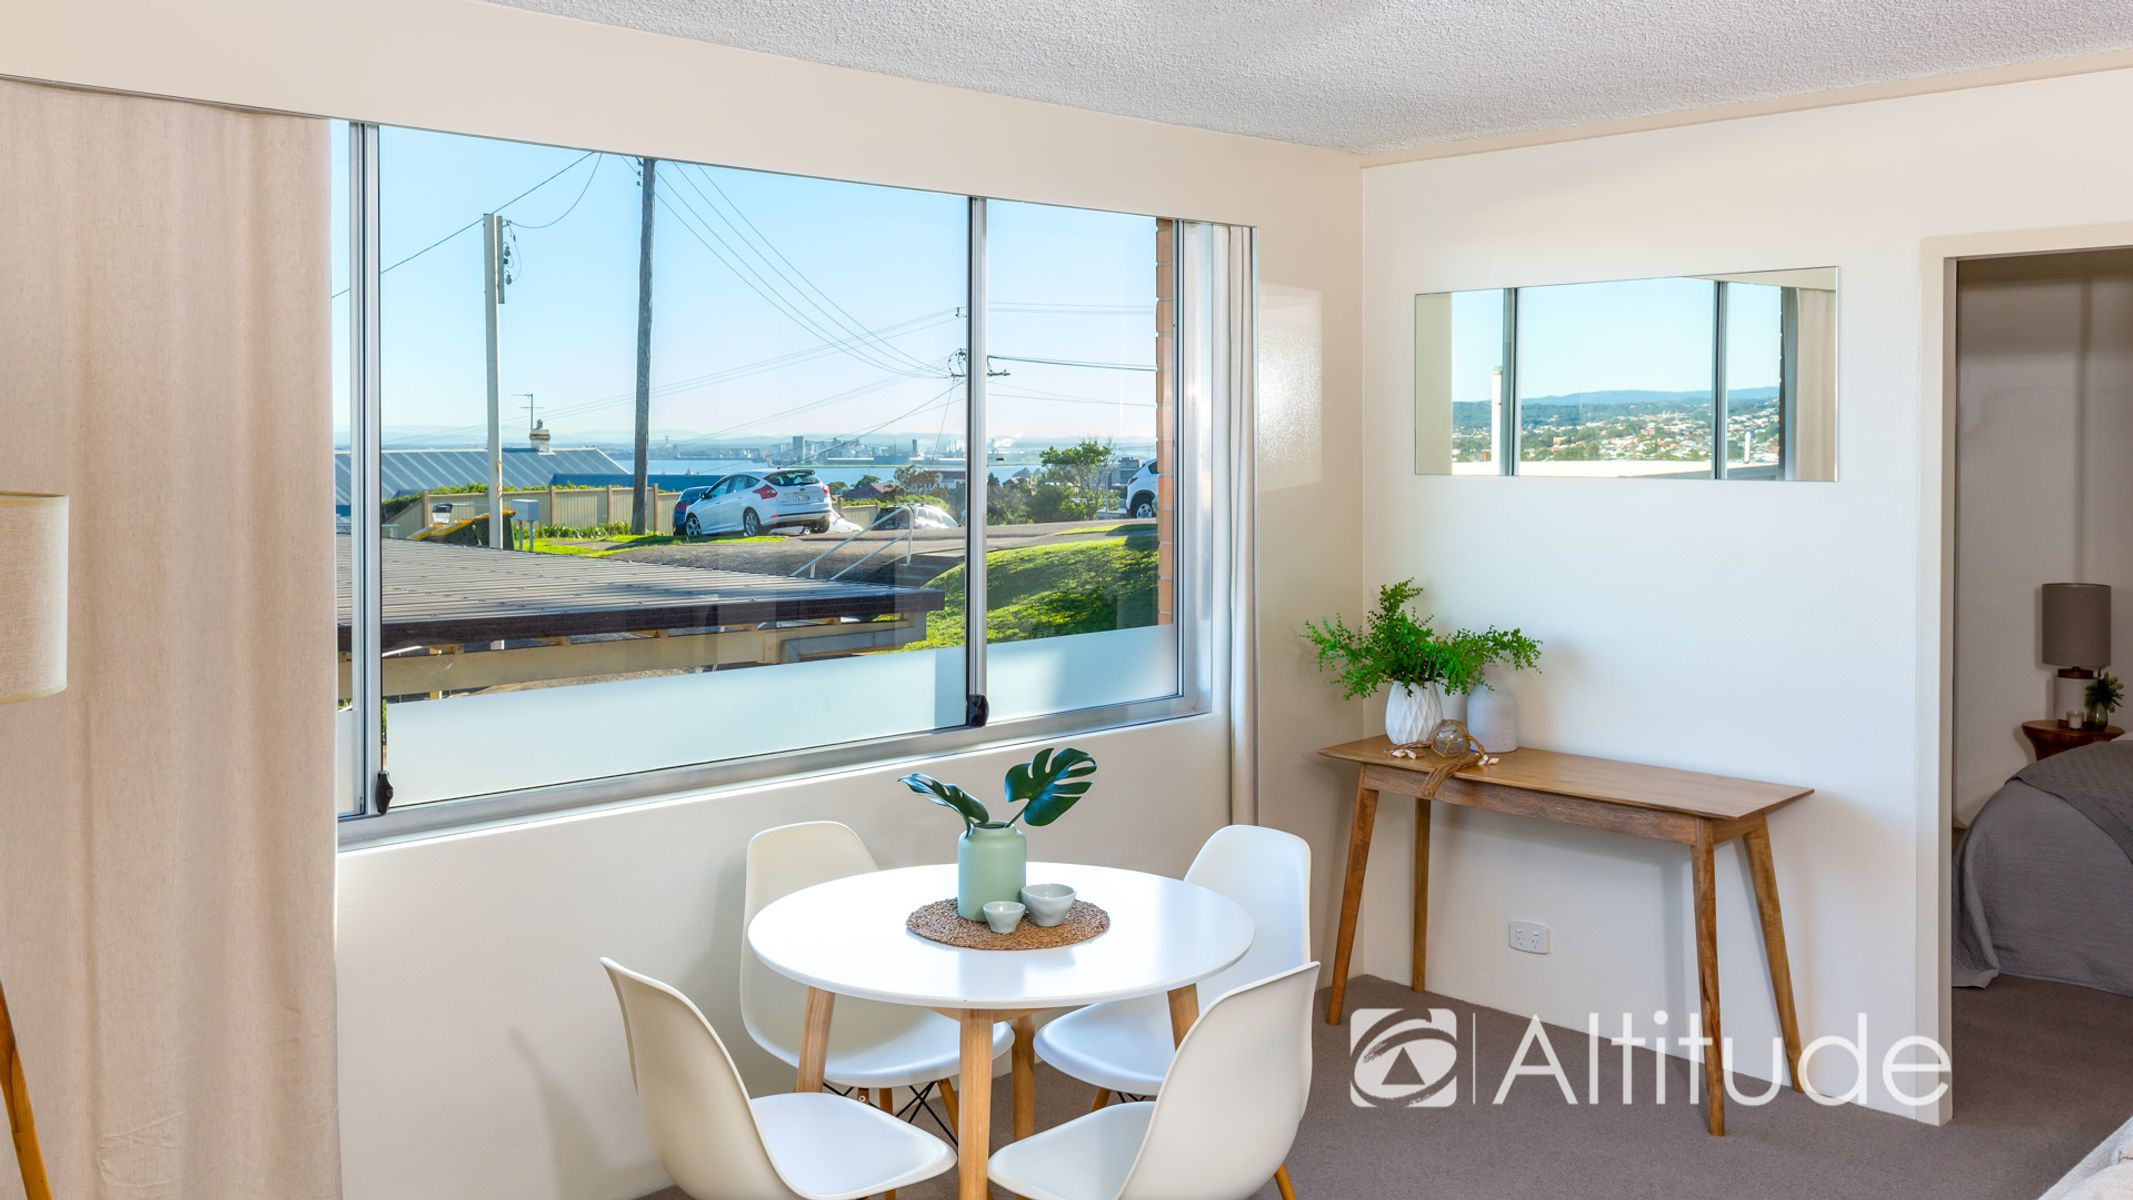 2/34 Lemnos Parade, The Hill, NSW 2300